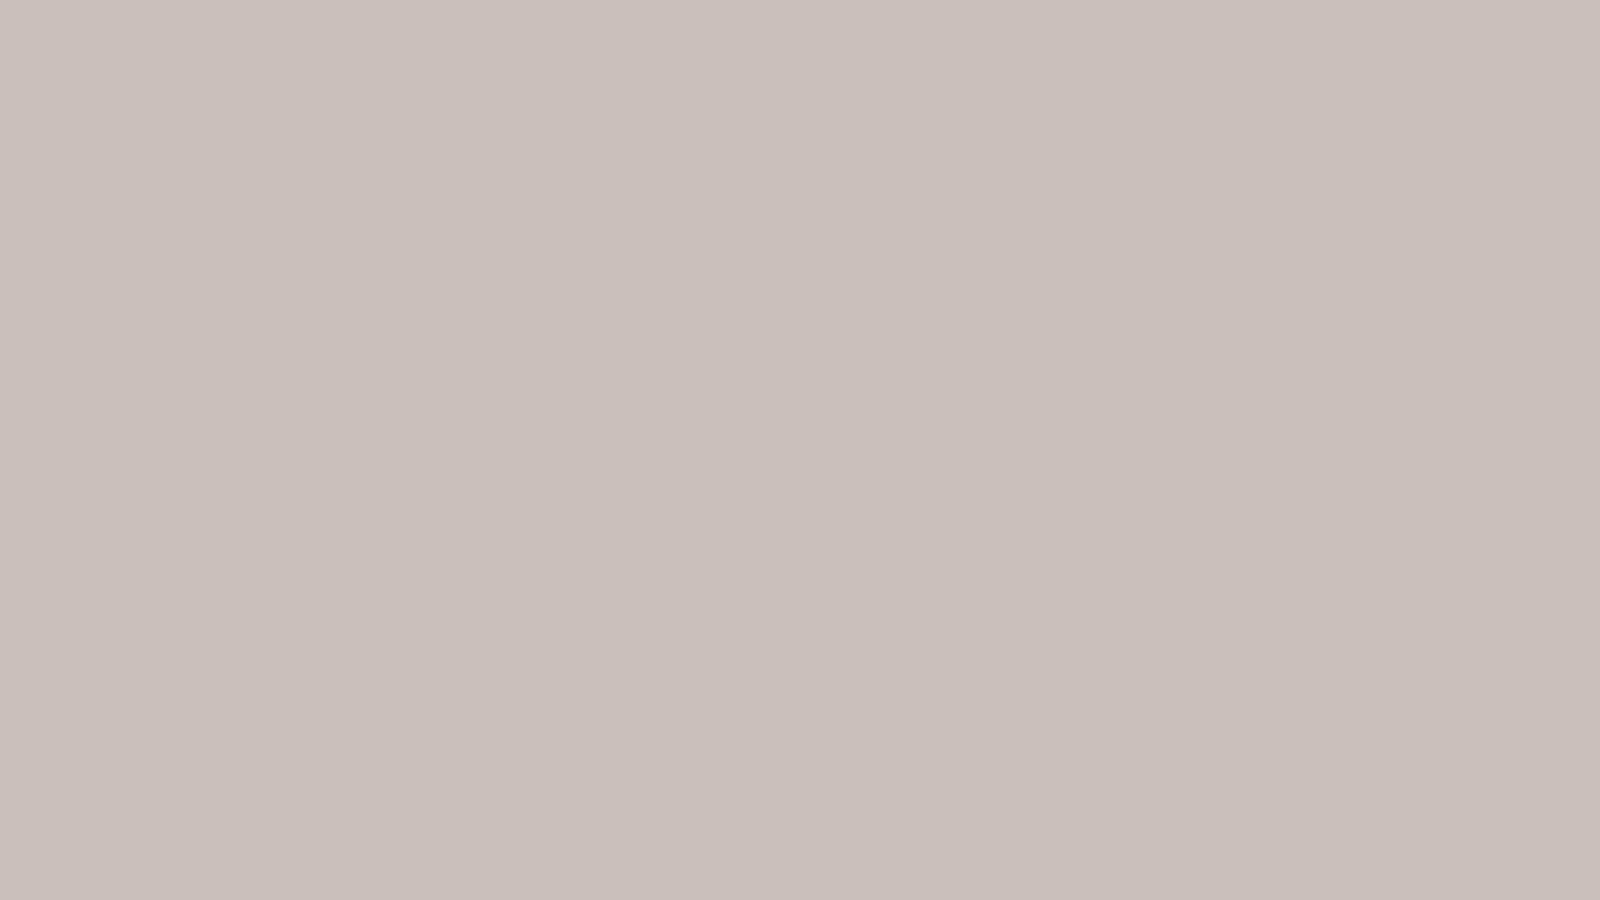 1600x900 Pale Silver Solid Color Background